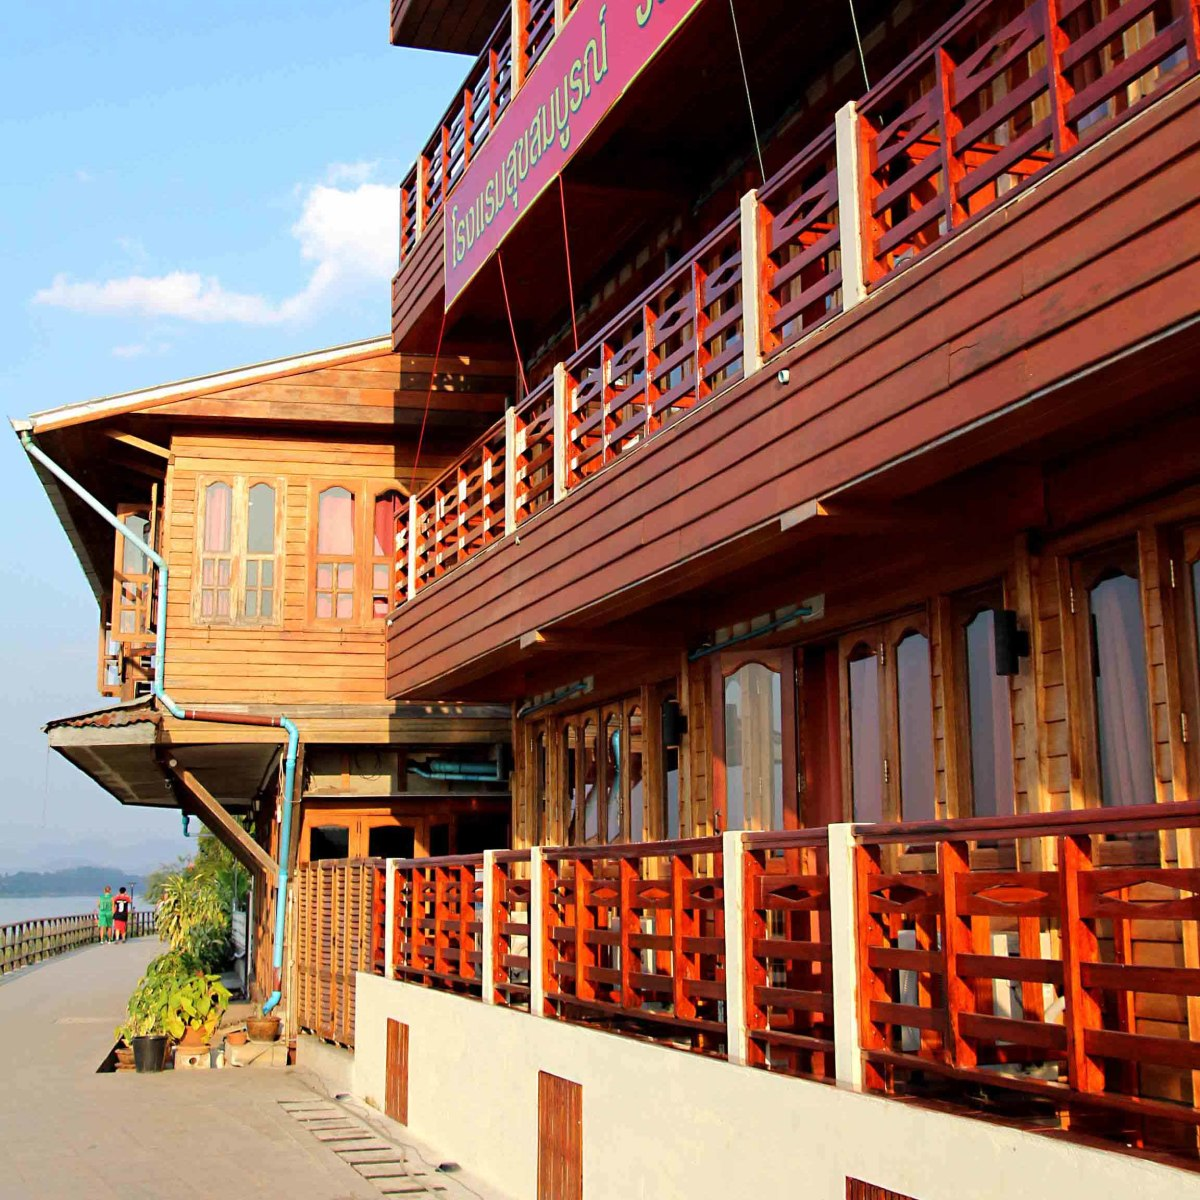 The promenade along the bank of the Mekong - separated from the Walking Street by hotels, restaurants and shops.